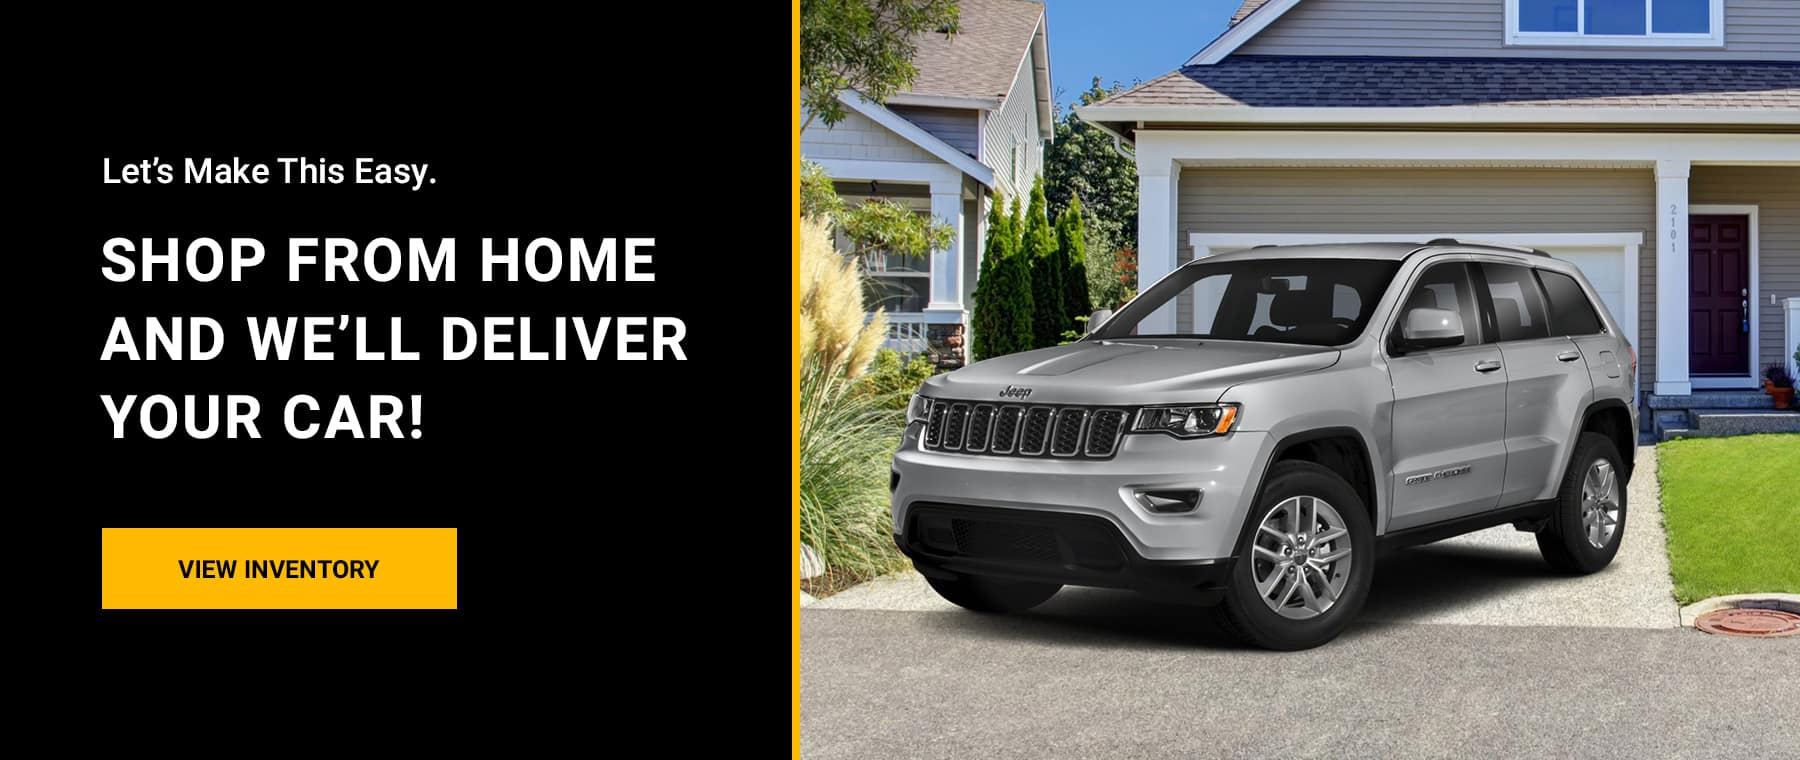 JEEP_Delivery_Slider_1800x760